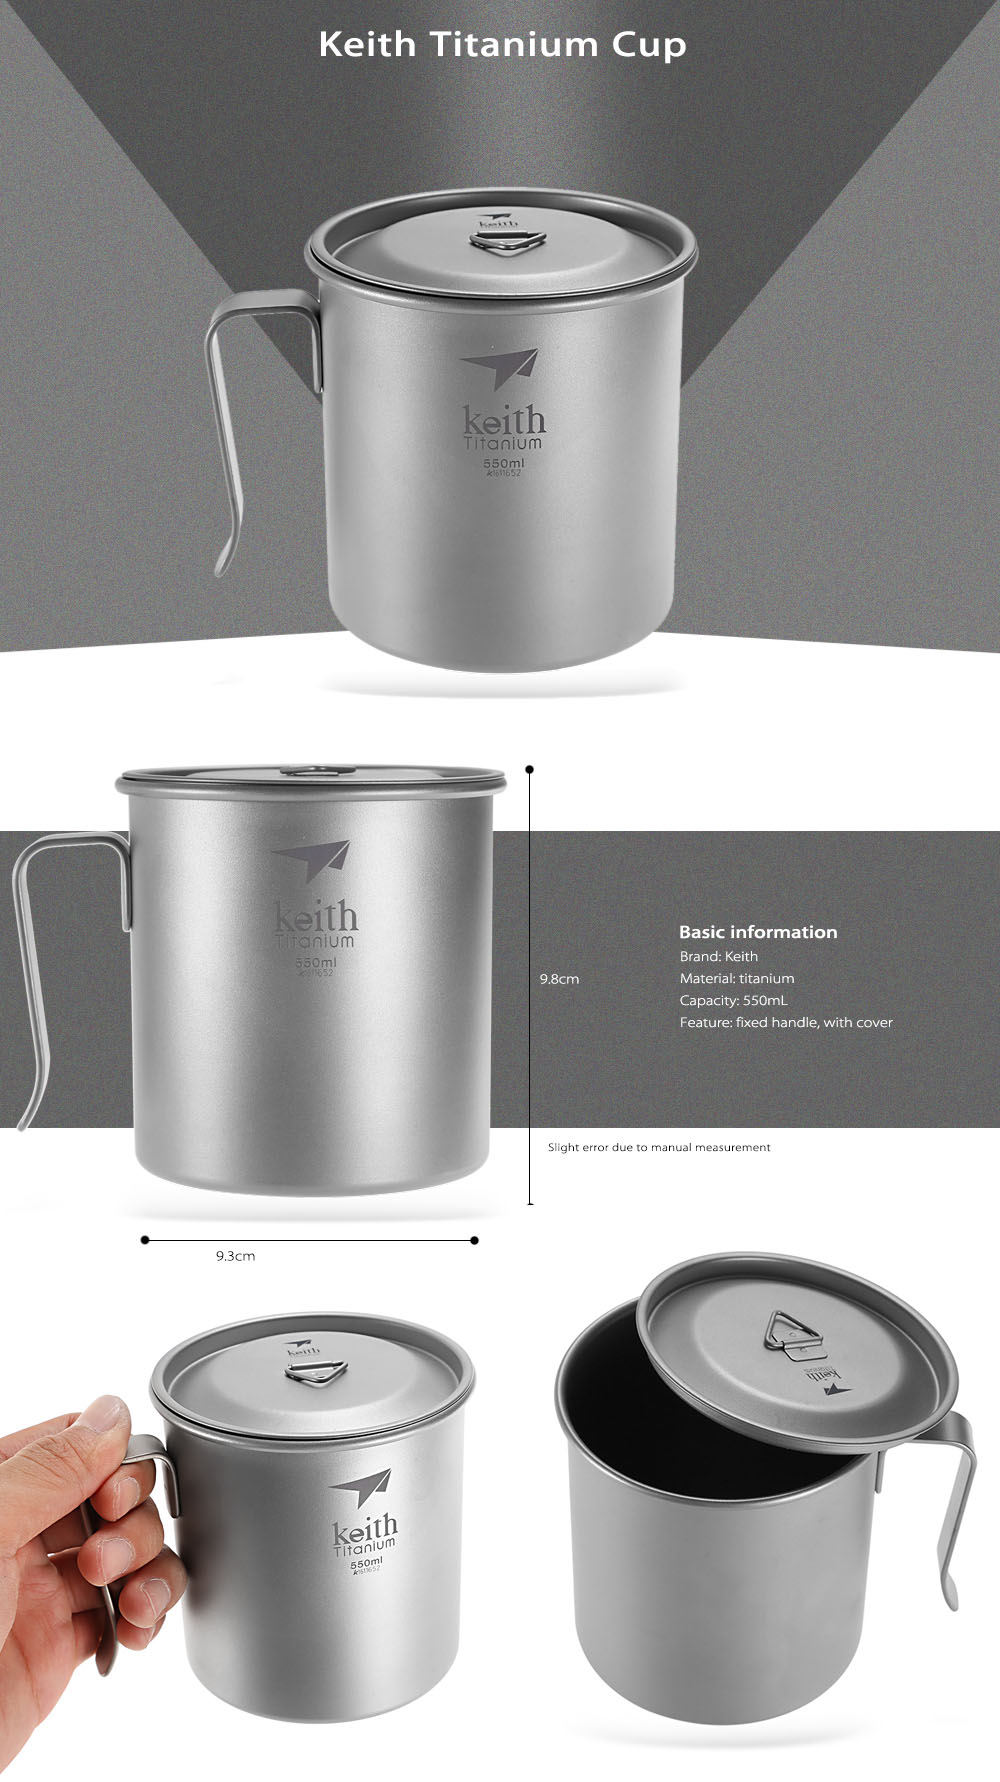 Keith Ti3266 Portable 550mL Titanium Cup with Fixed Handle / Cover